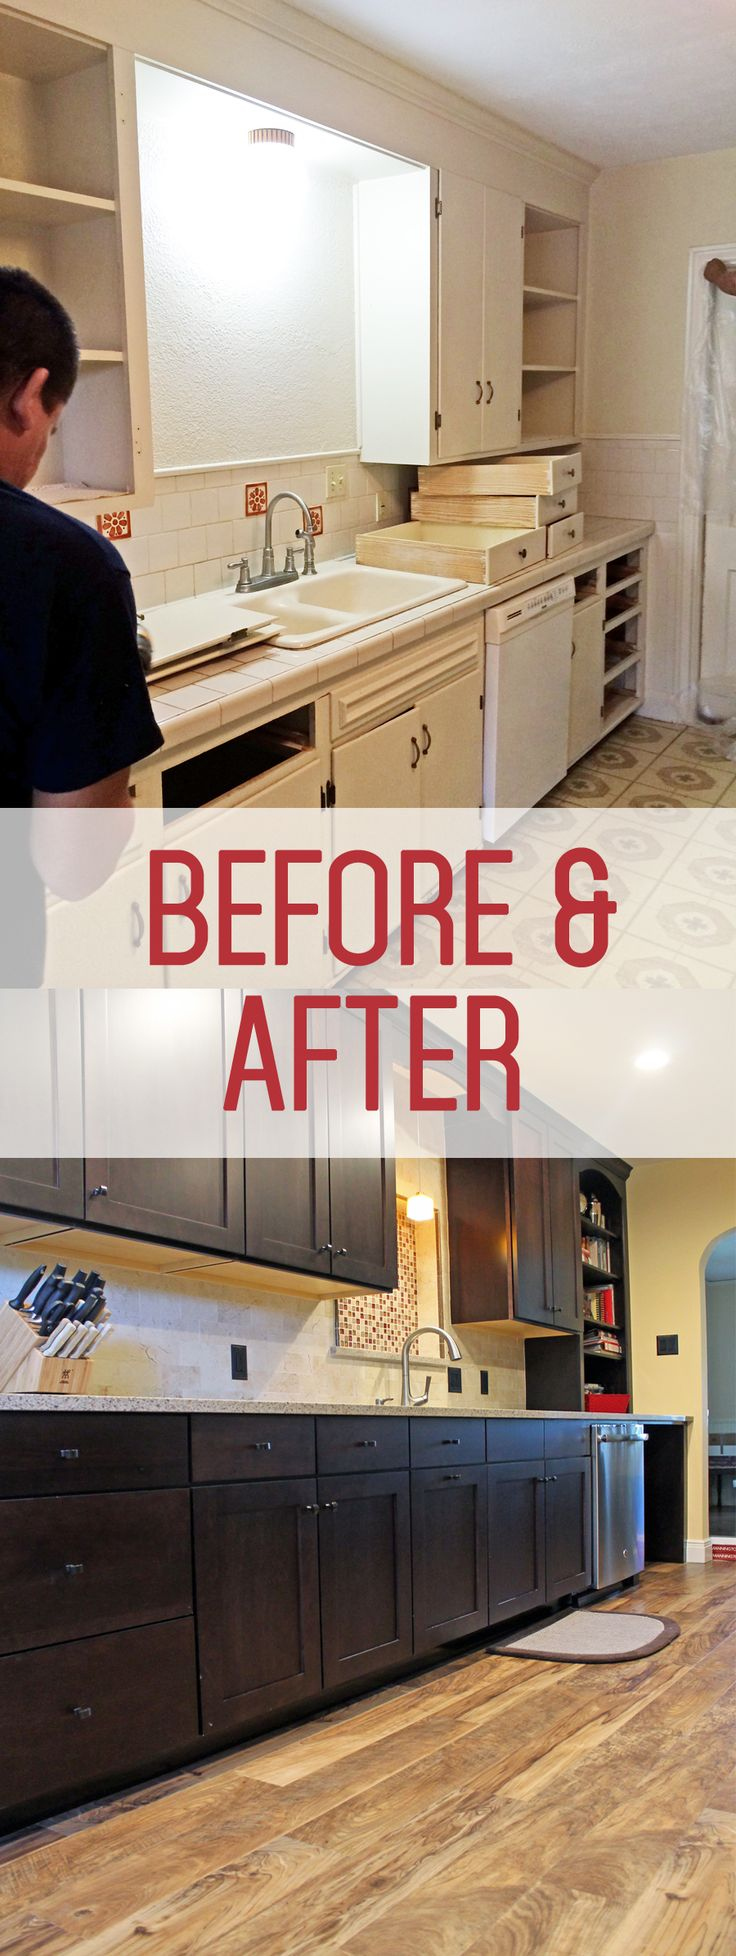 33 best before and after remodeling images on pinterest photo kitchen remodel before and after ideas